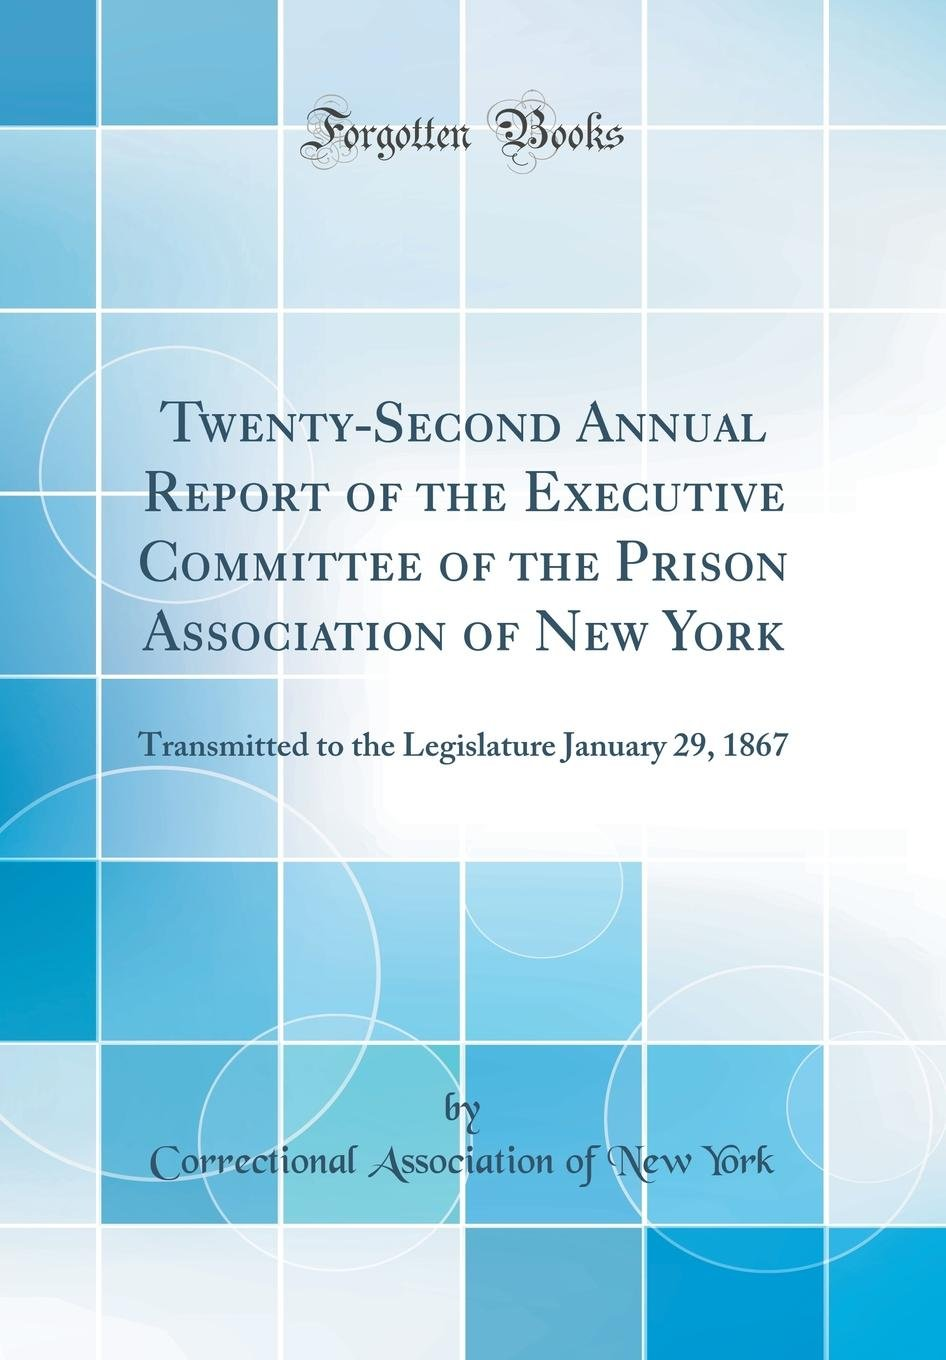 Twenty-Second Annual Report of the Executive Committee of the Prison Association of New York: Transmitted to the Legislature January 29, 1867 (Classic Reprint) pdf